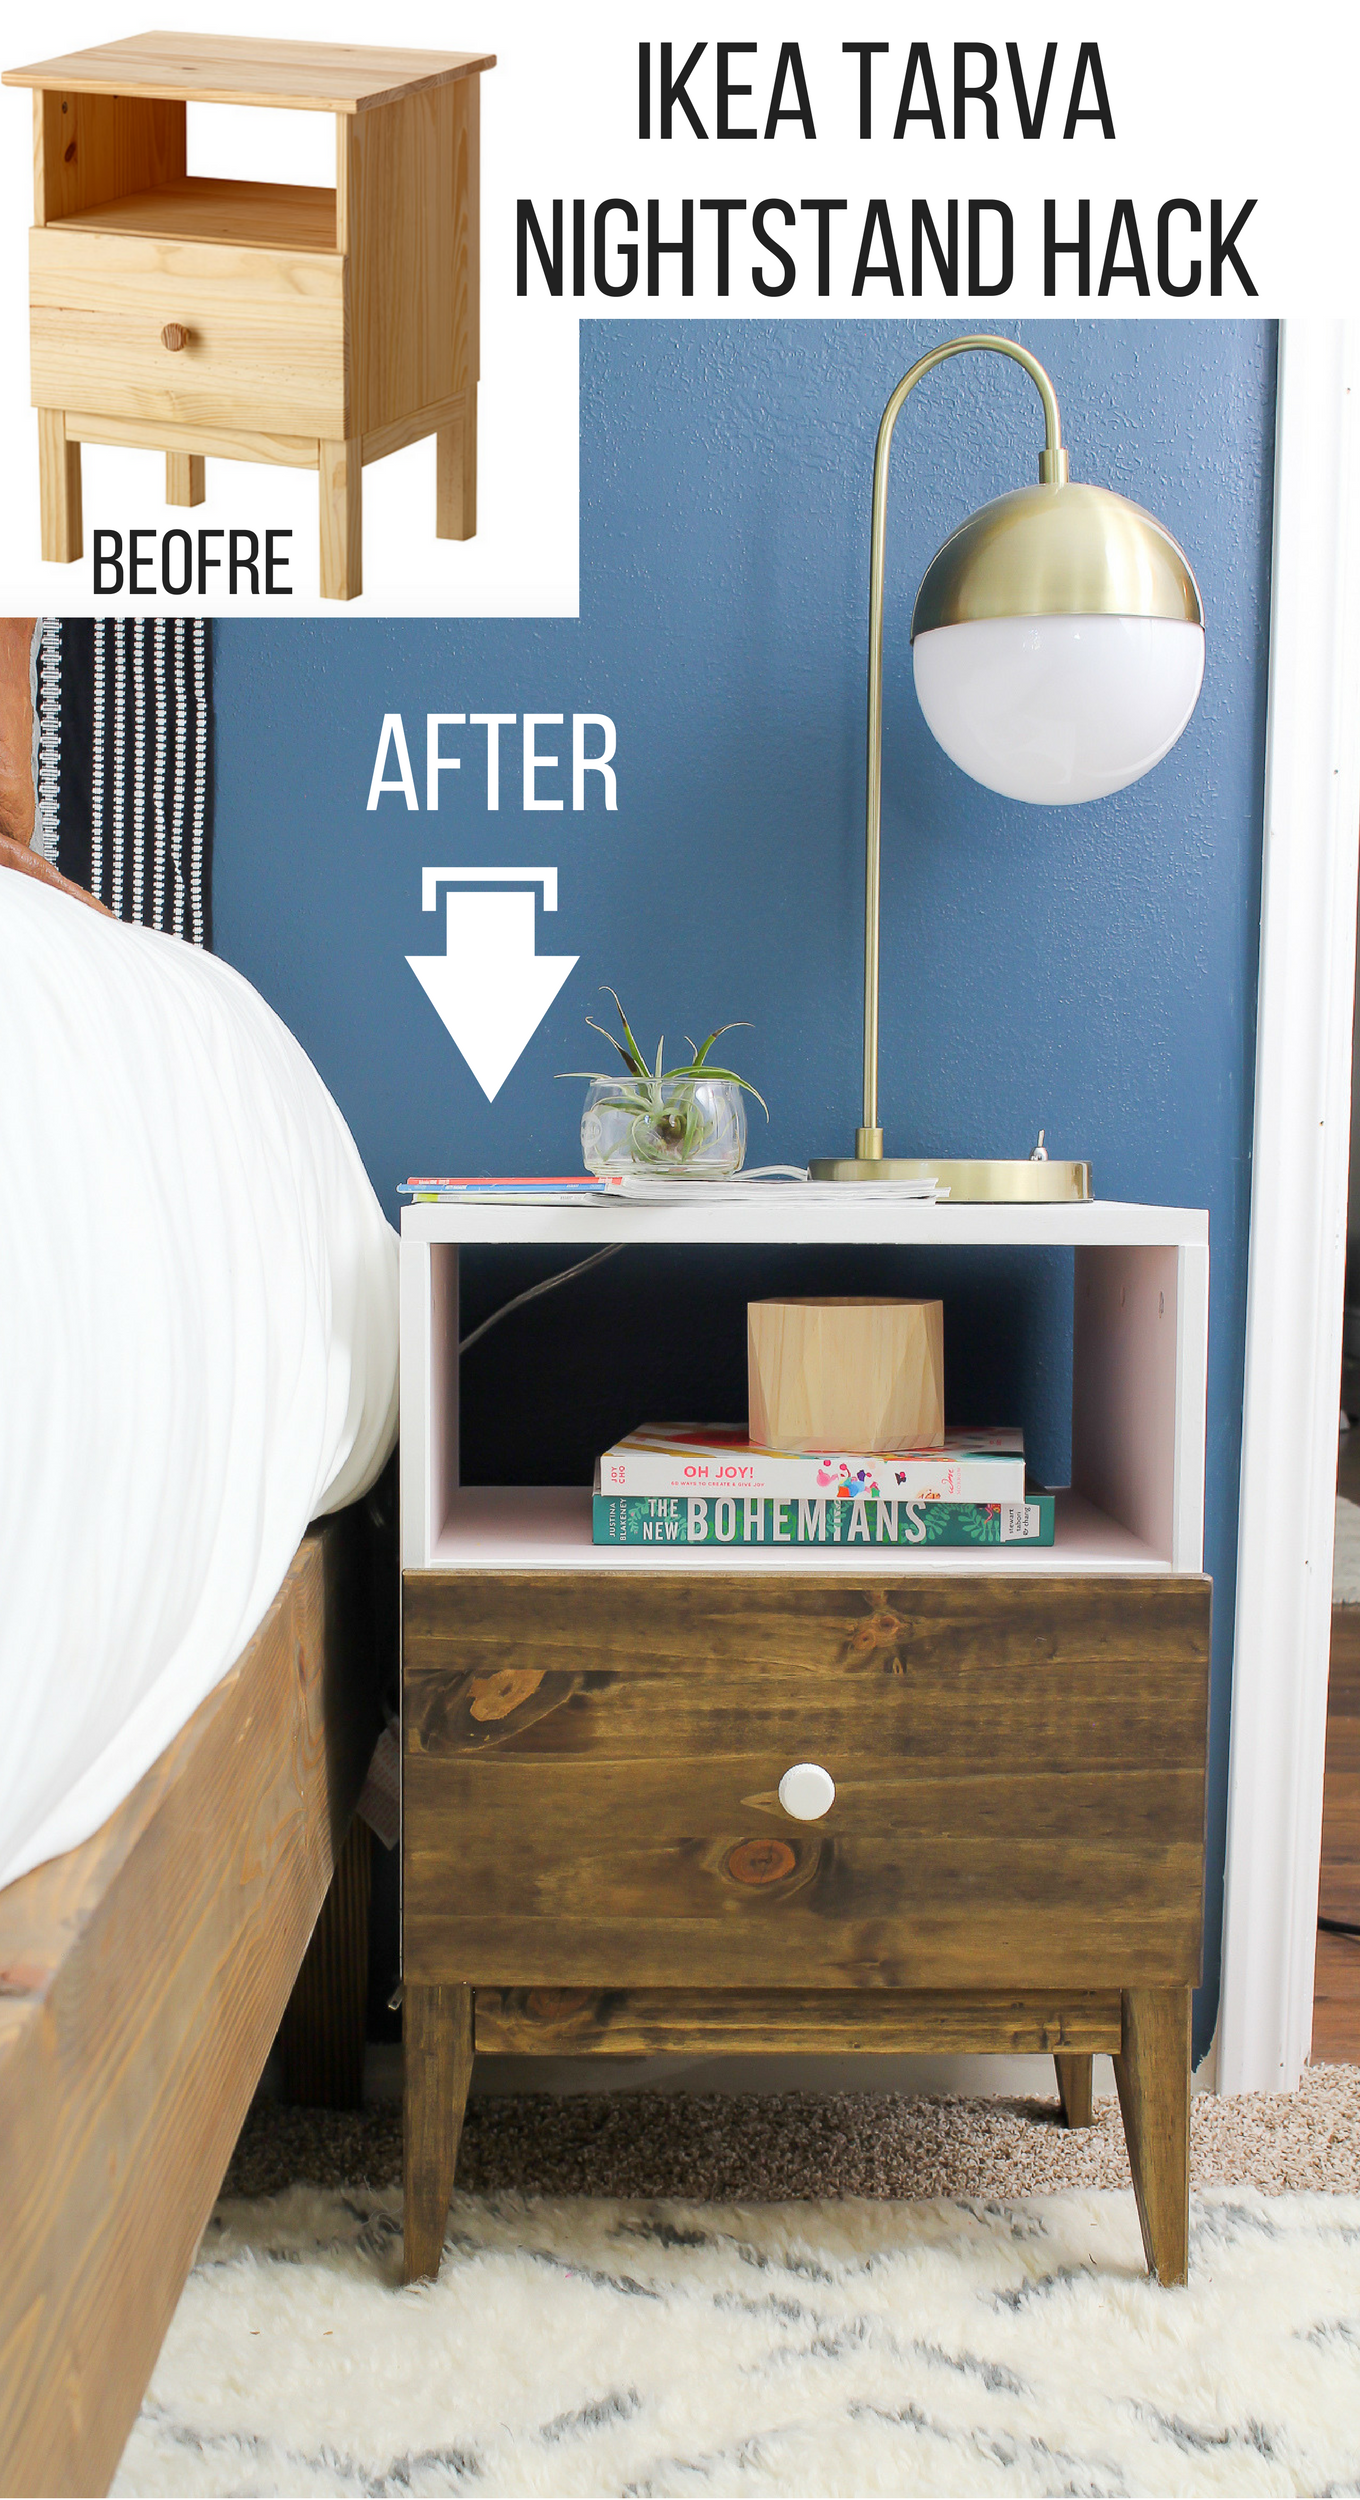 ikea tarva nightstand hack did again home zoey night accent table with baskets walnut check out what she this seriously cool almost didn recognize that was the grohe rainshower